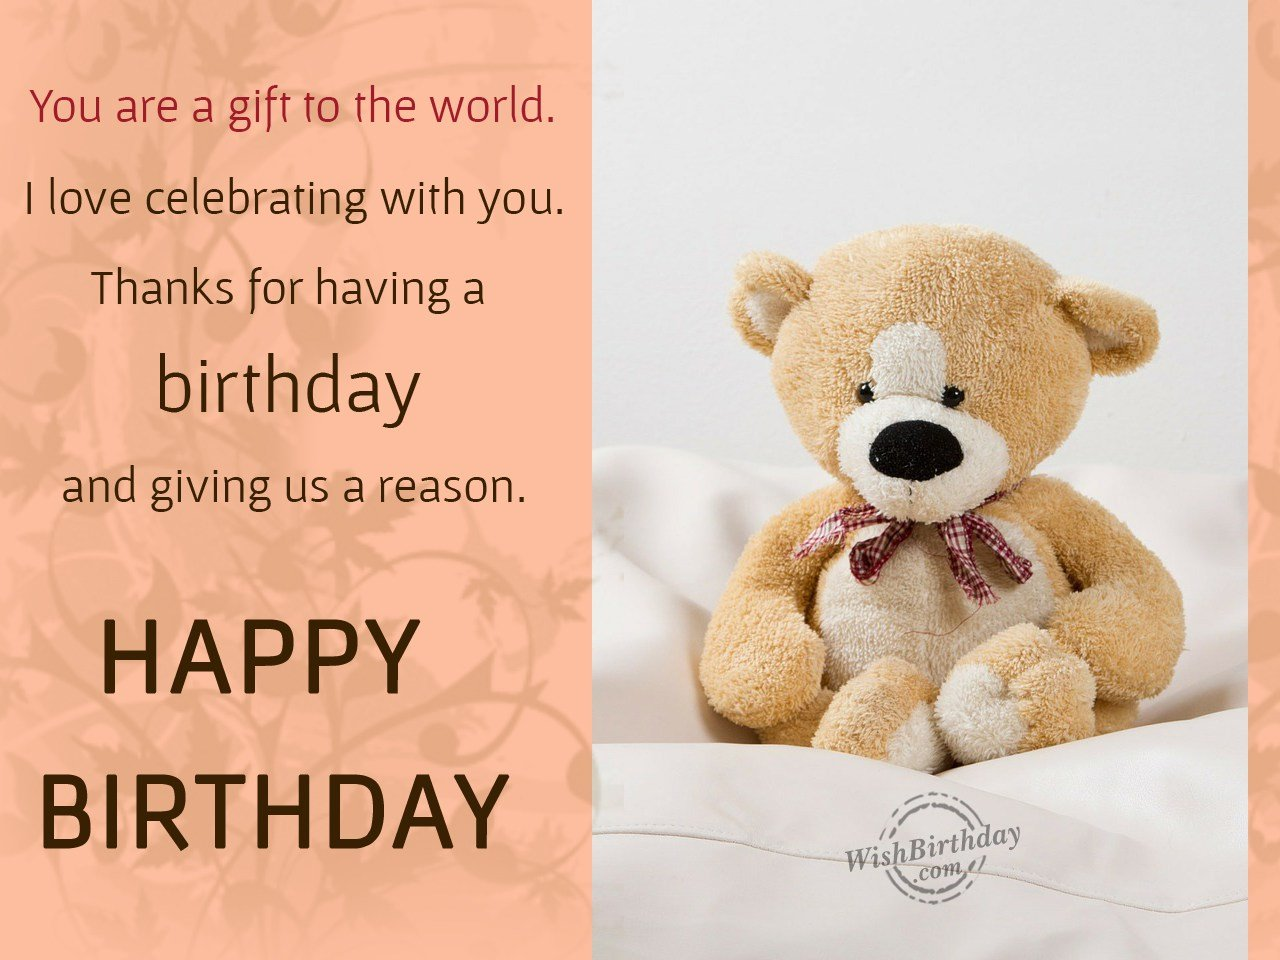 Awesome birthday wishes with teddy bear greeting to dear Brother from sister